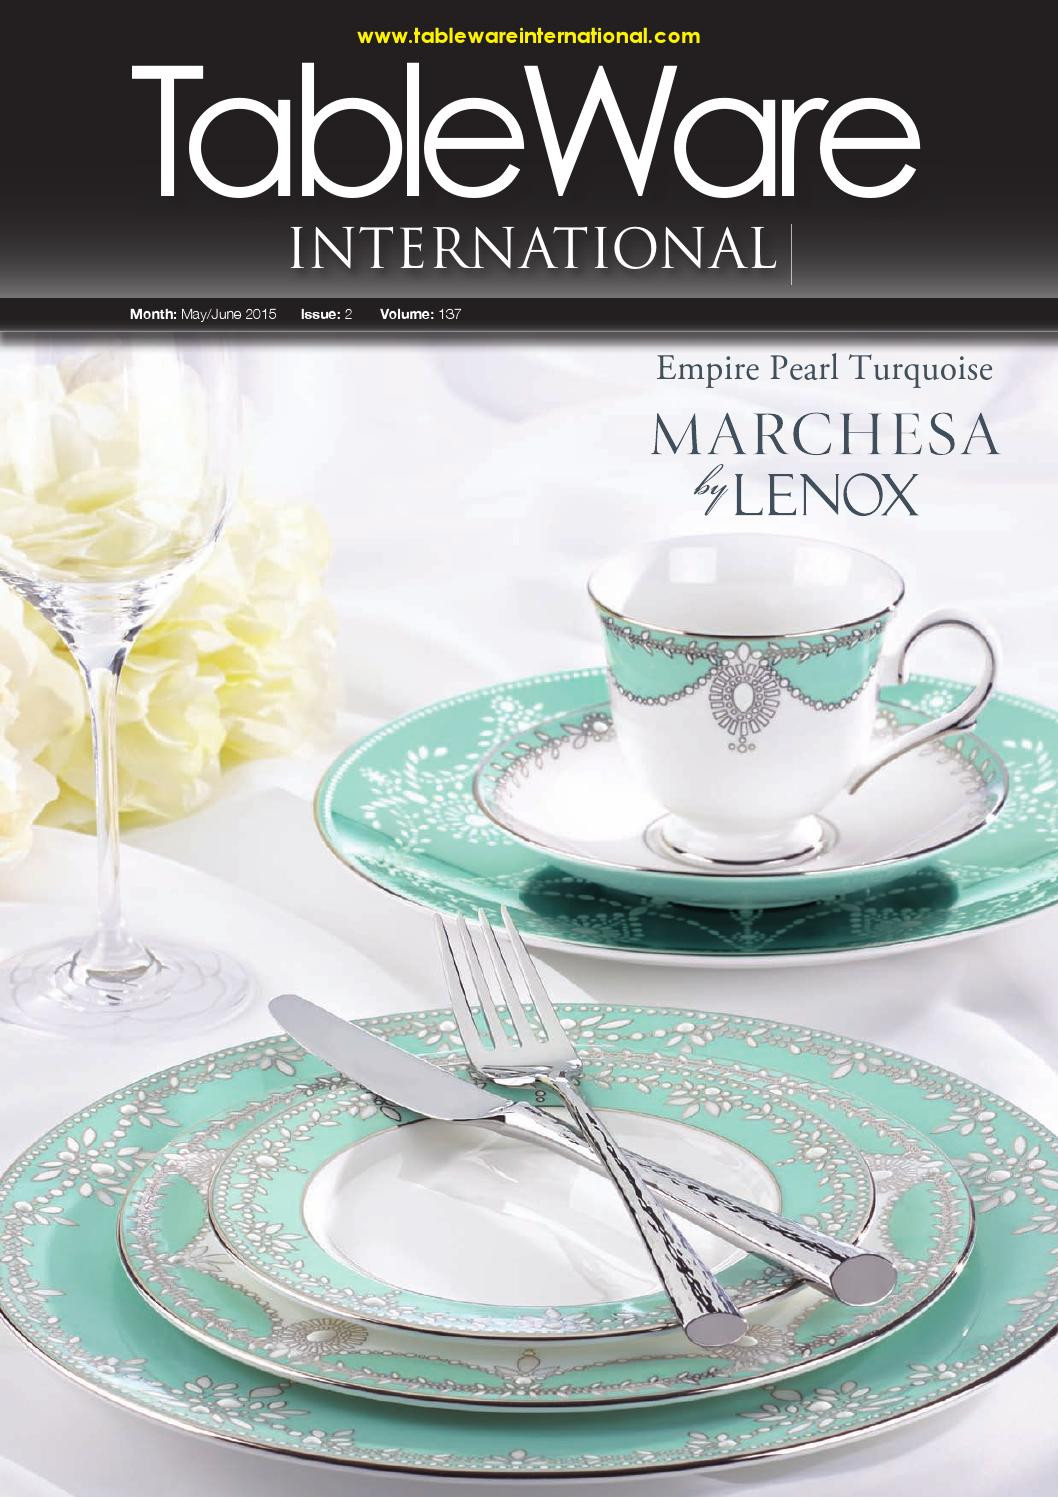 Macys Kate Spade Vase Of Tableware International by Lema Publishing issuu with Page 1